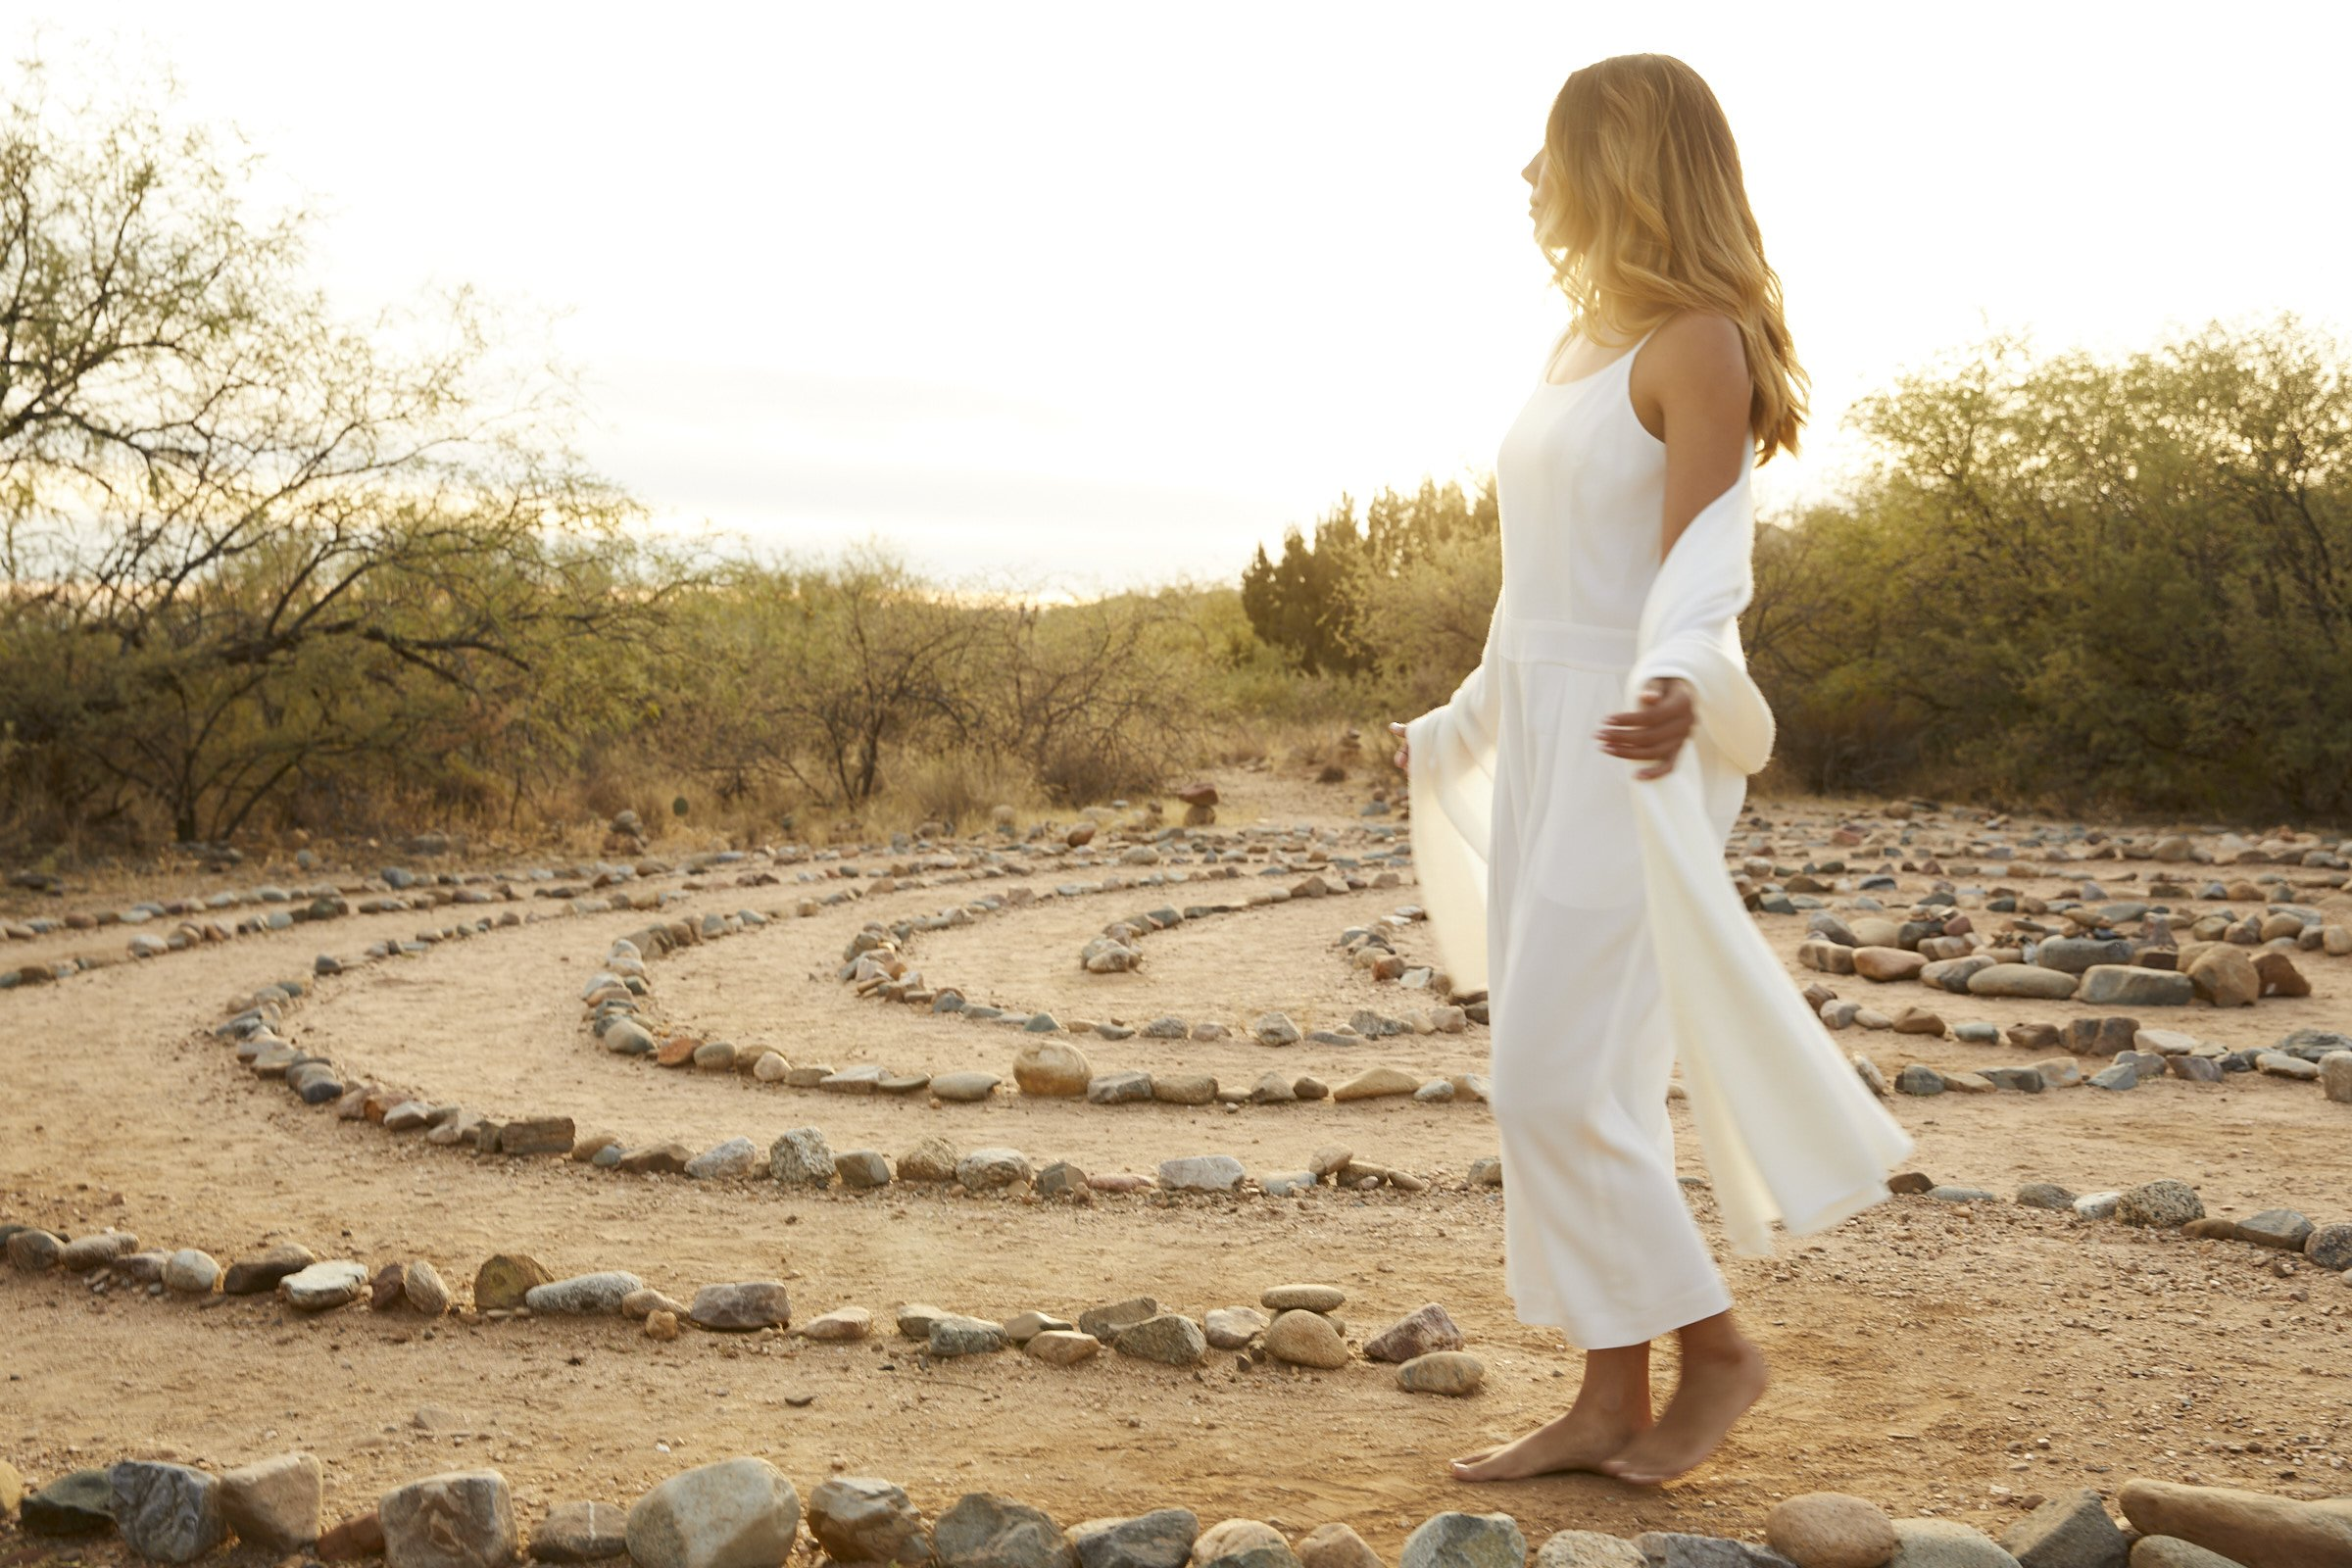 woman reflecting in the labyrinth journey at sunset